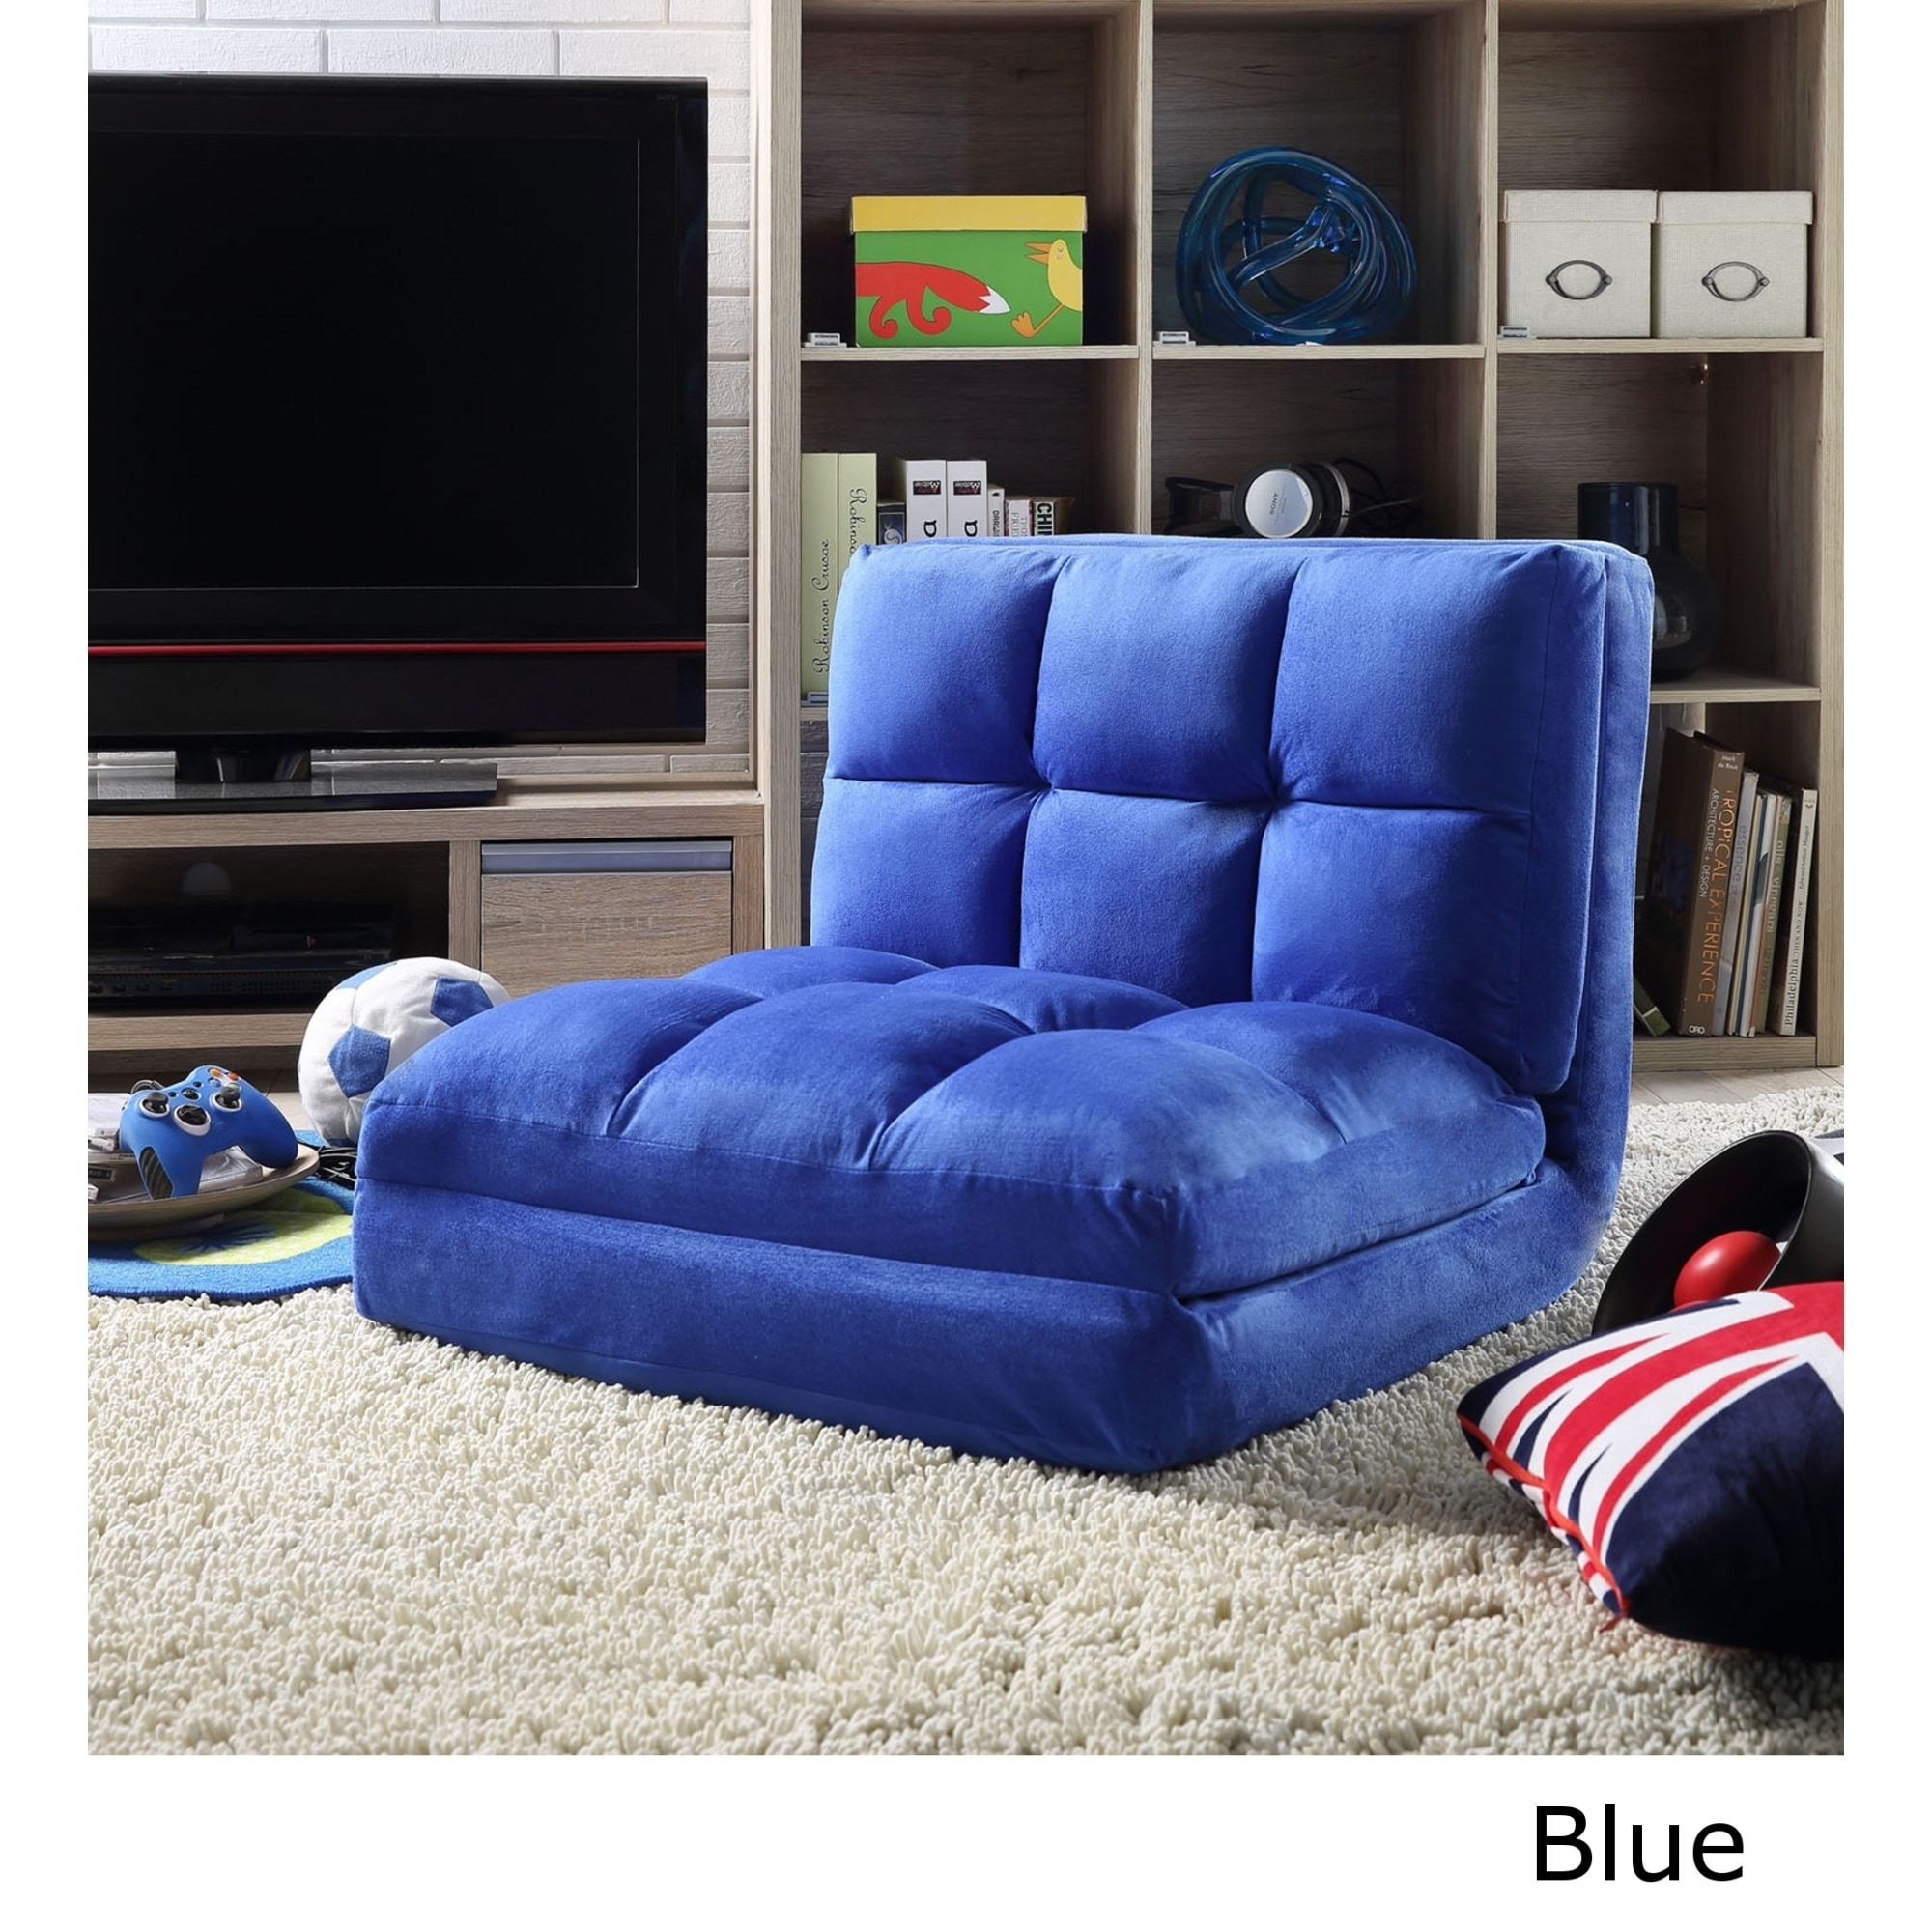 Shop Loungie Microsuede 5 Position Convertible Flip Chair/ Sleeper   On  Sale   Free Shipping Today   Overstock.com   14819087